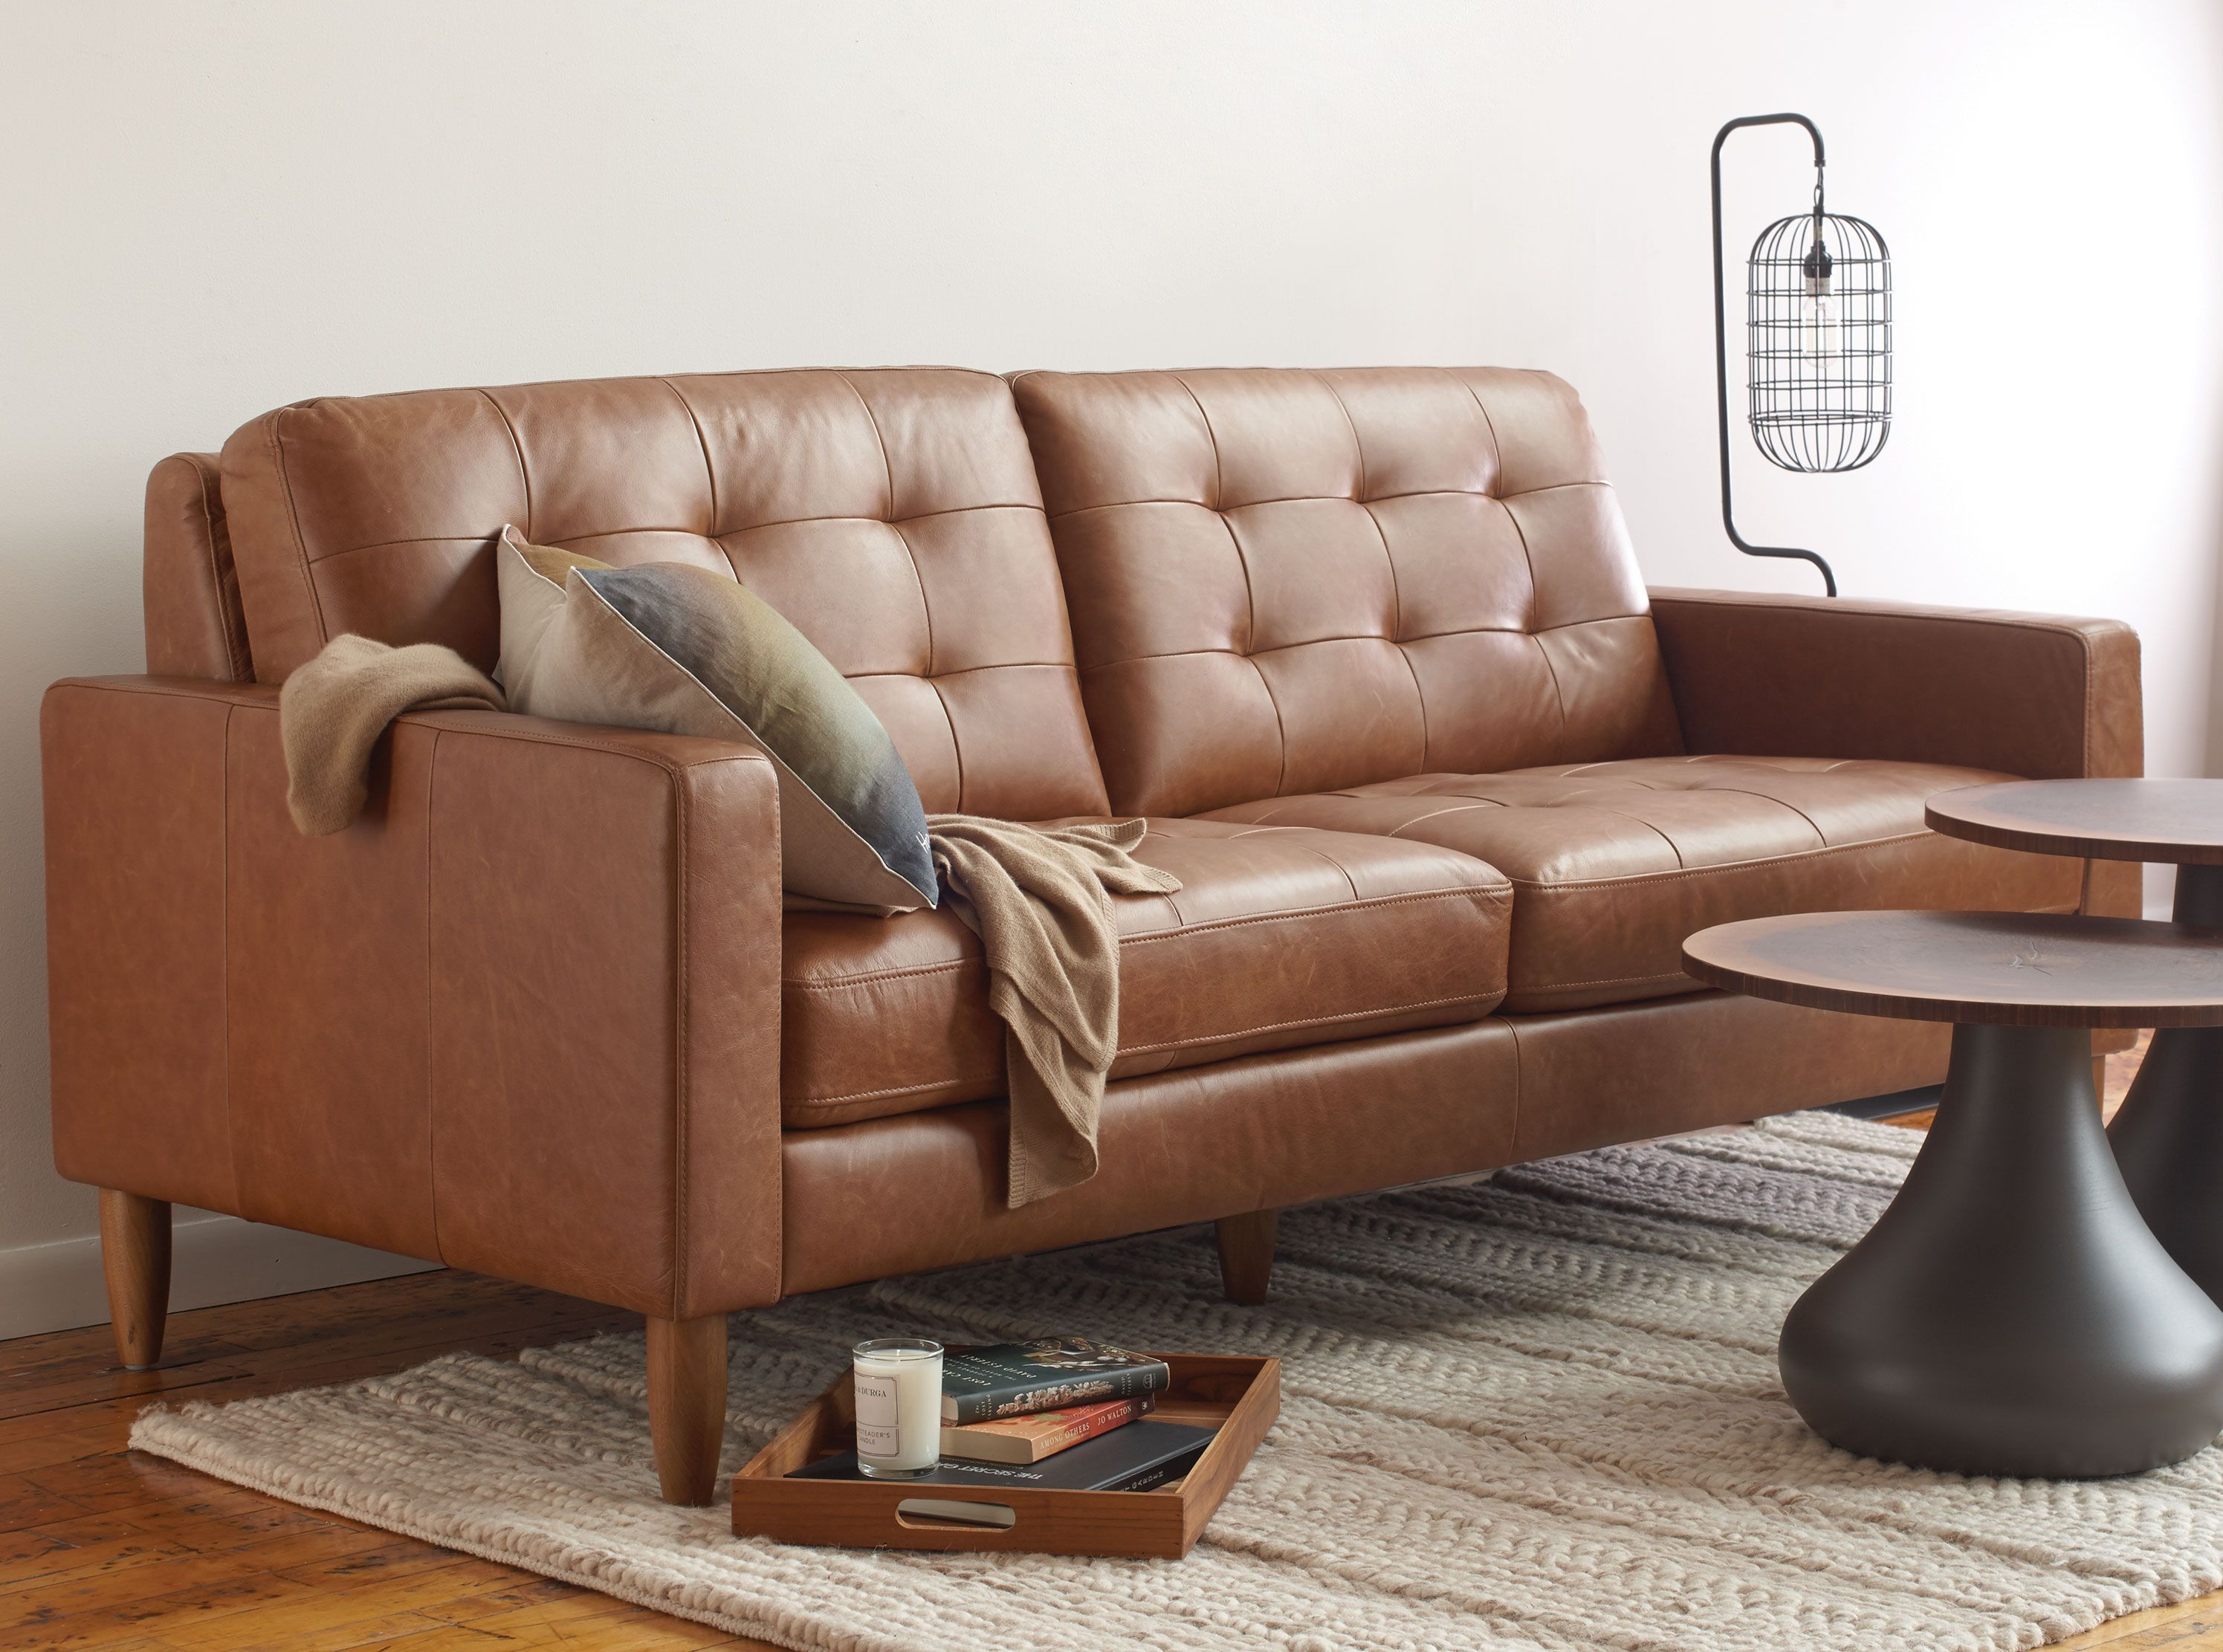 Sydney Leather Sofa : kasala sectional - Sectionals, Sofas & Couches